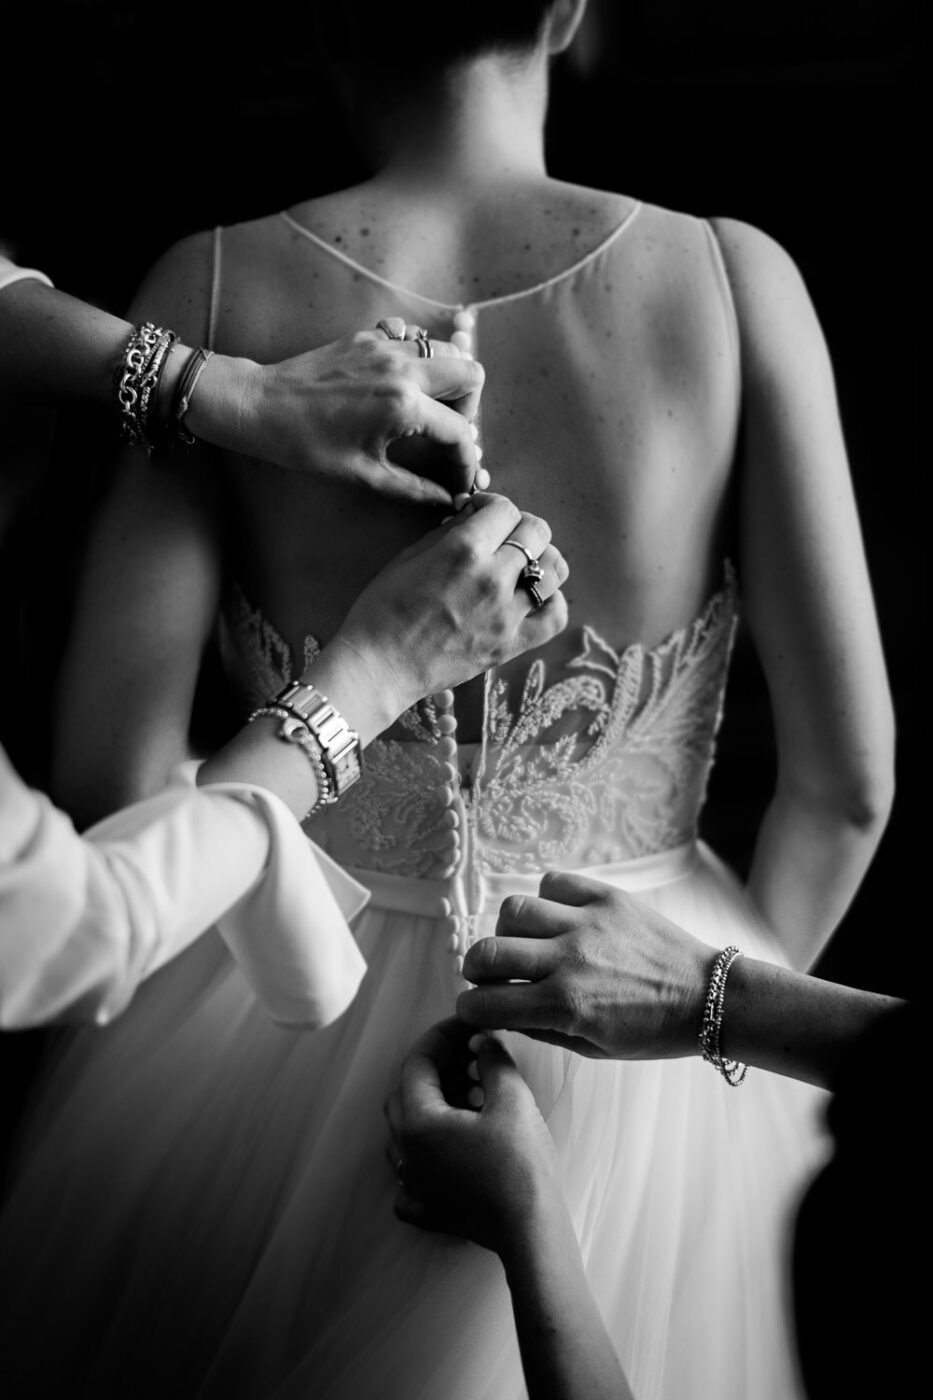 Black & White portrait of a bride from behind with 2 sets of hands closing the many buttons of her wedding gown in Verona Italy by Luxury Wedding Photographer Francesco Bognin